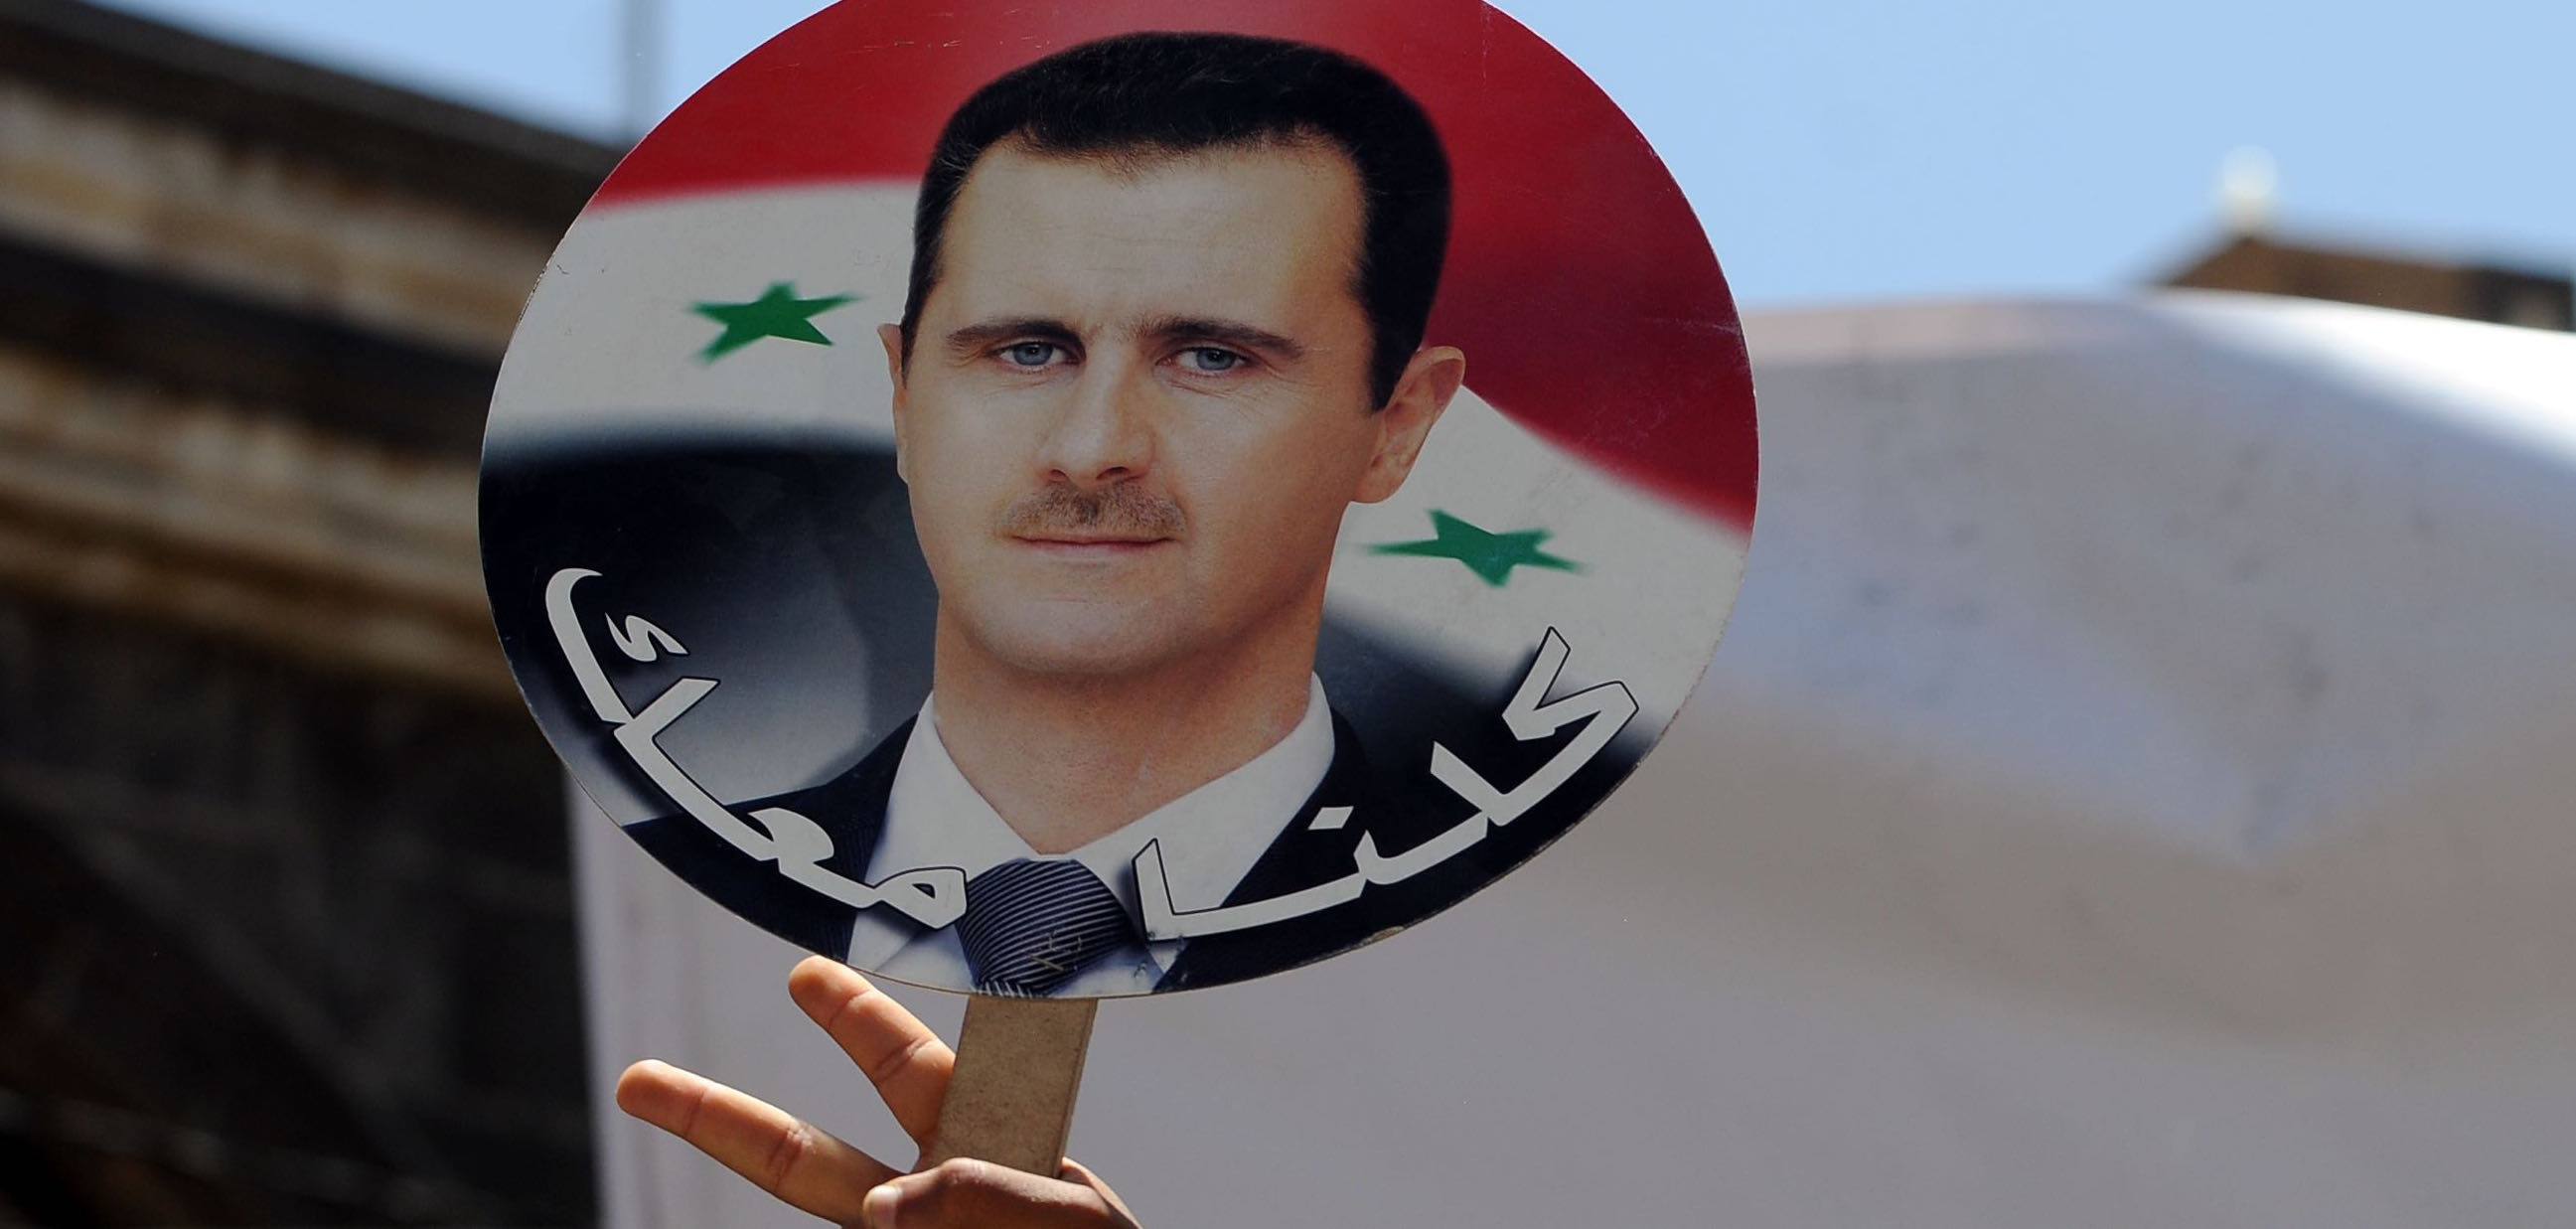 Yemeni protesters hold a photo of Syrian President Bashar al-Assad following US-led airstrikes (Photo: Mohammed Hamoud/Getty)